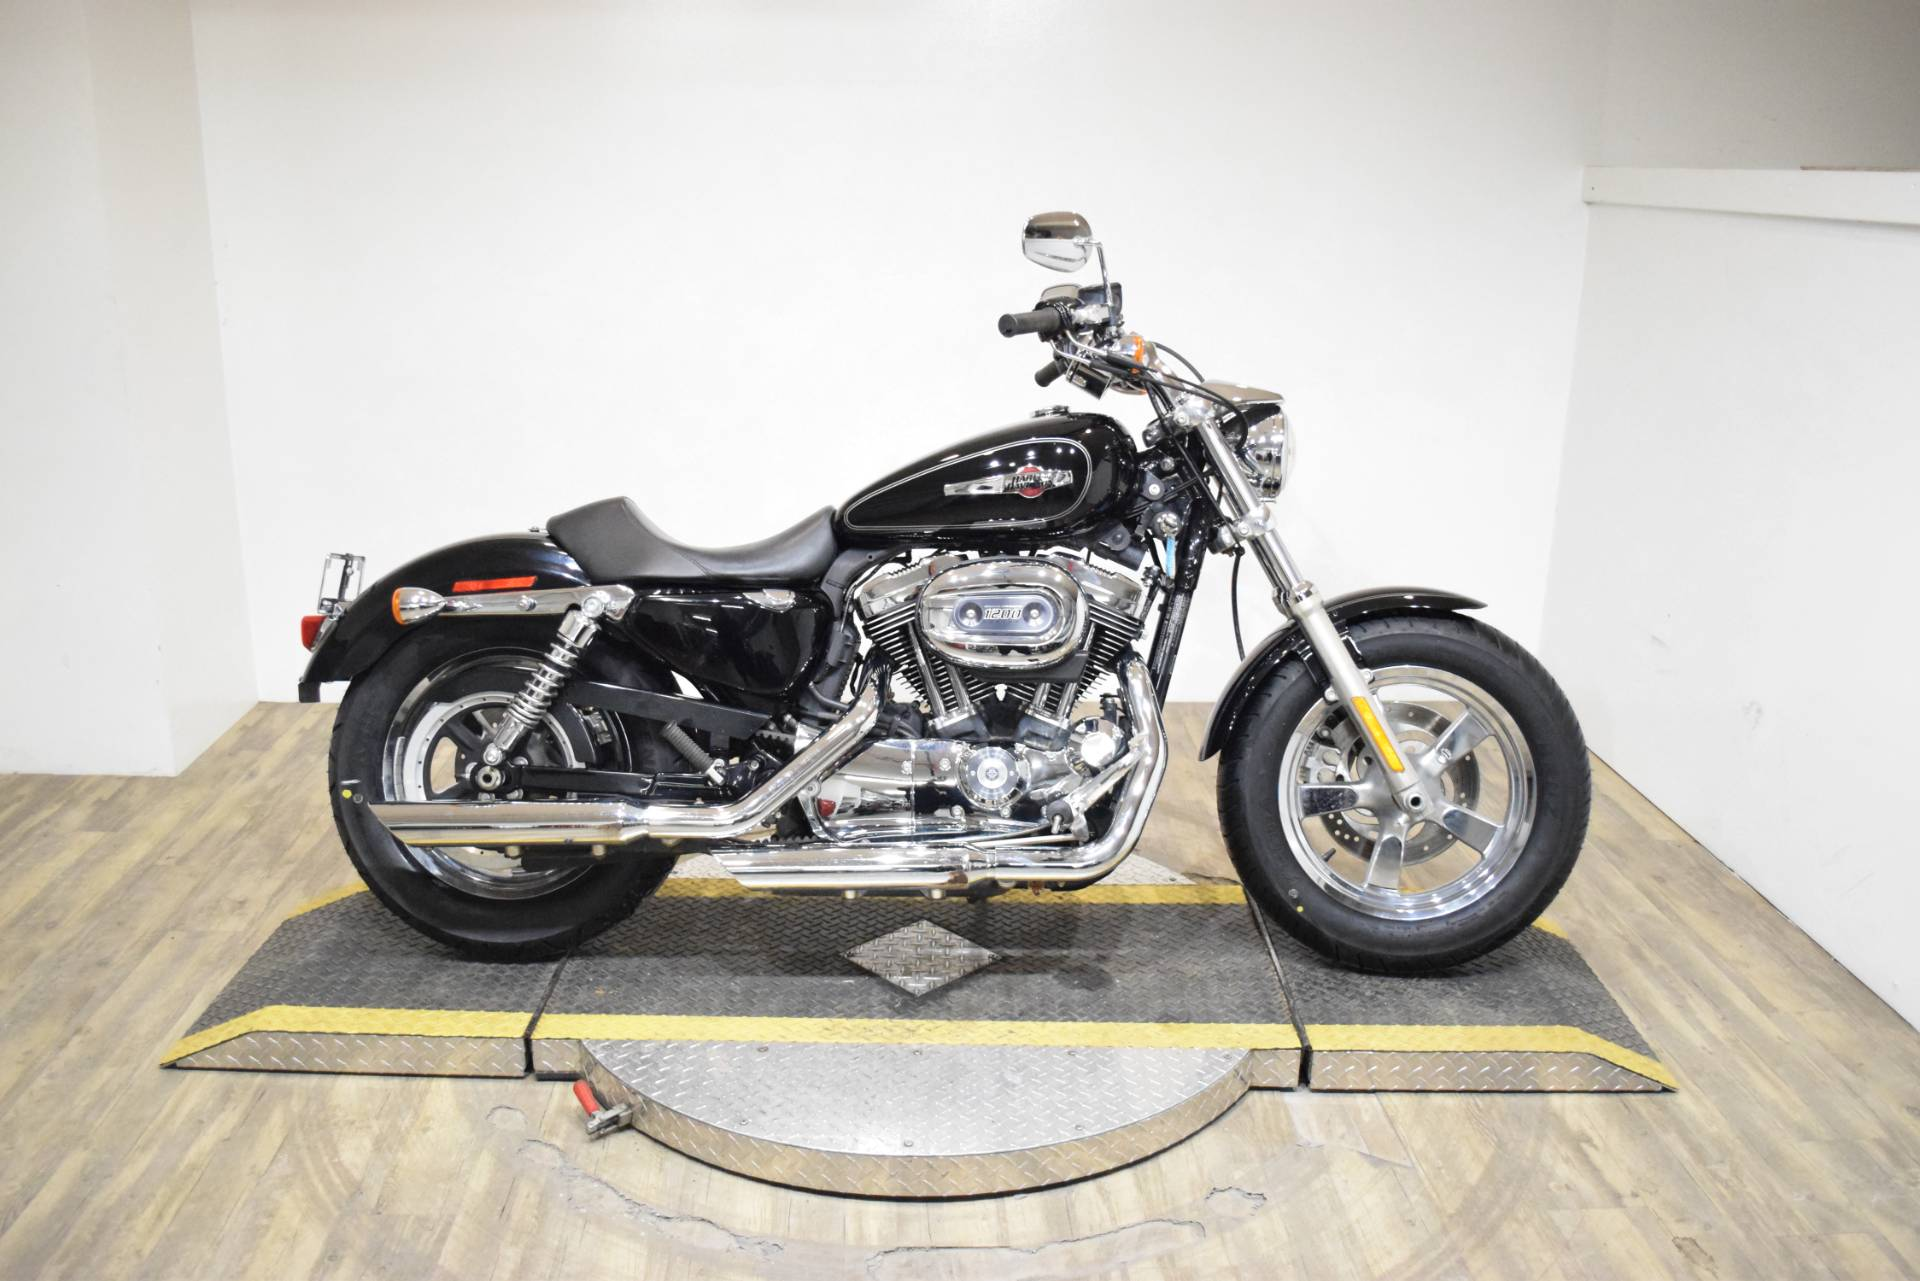 2013 Harley-Davidson Sportster® 1200 Custom in Wauconda, Illinois - Photo 1